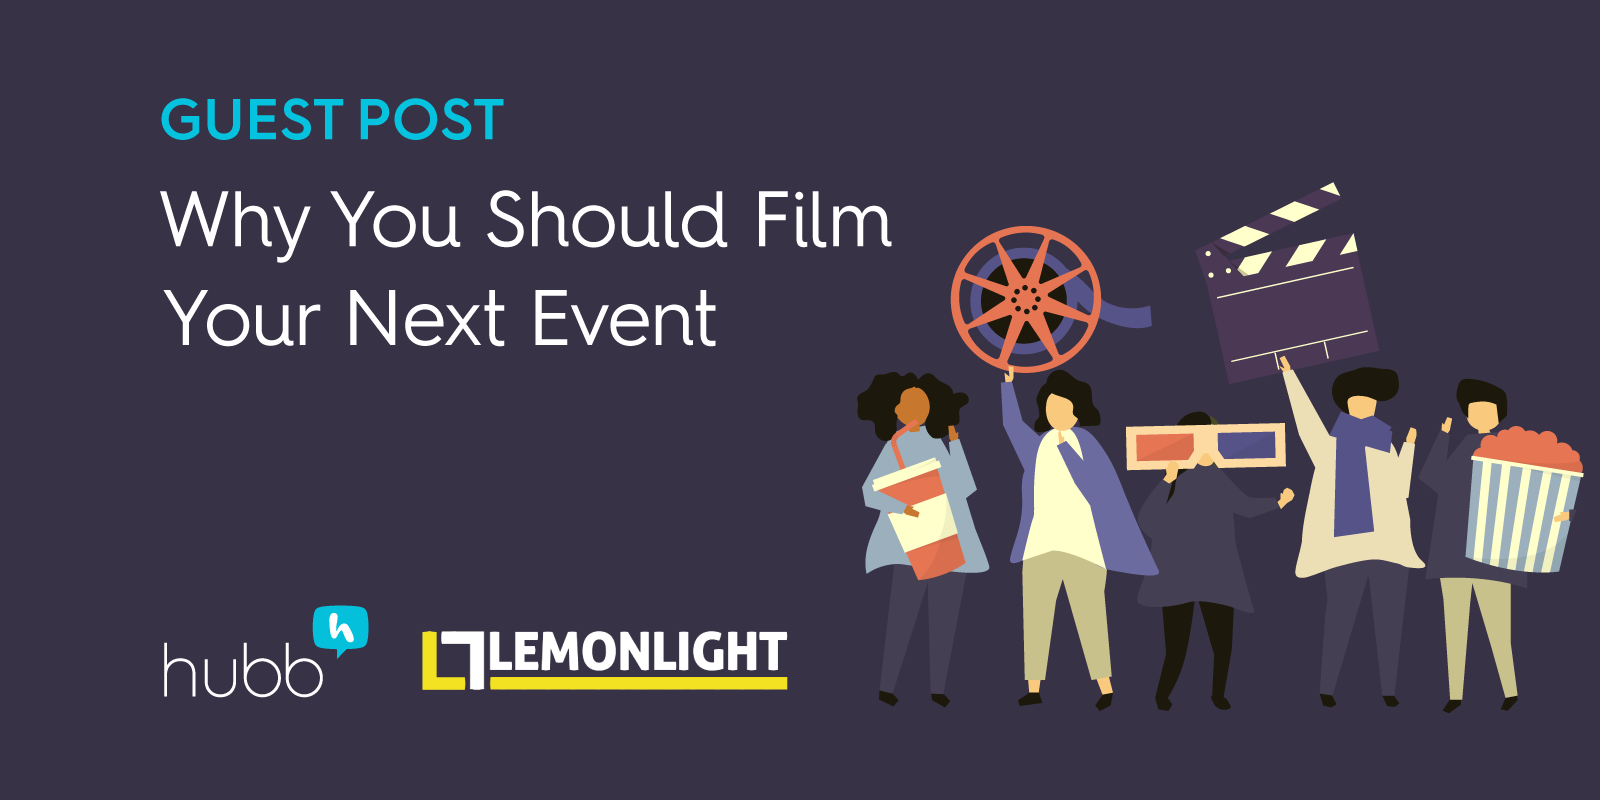 Why you should film your next event